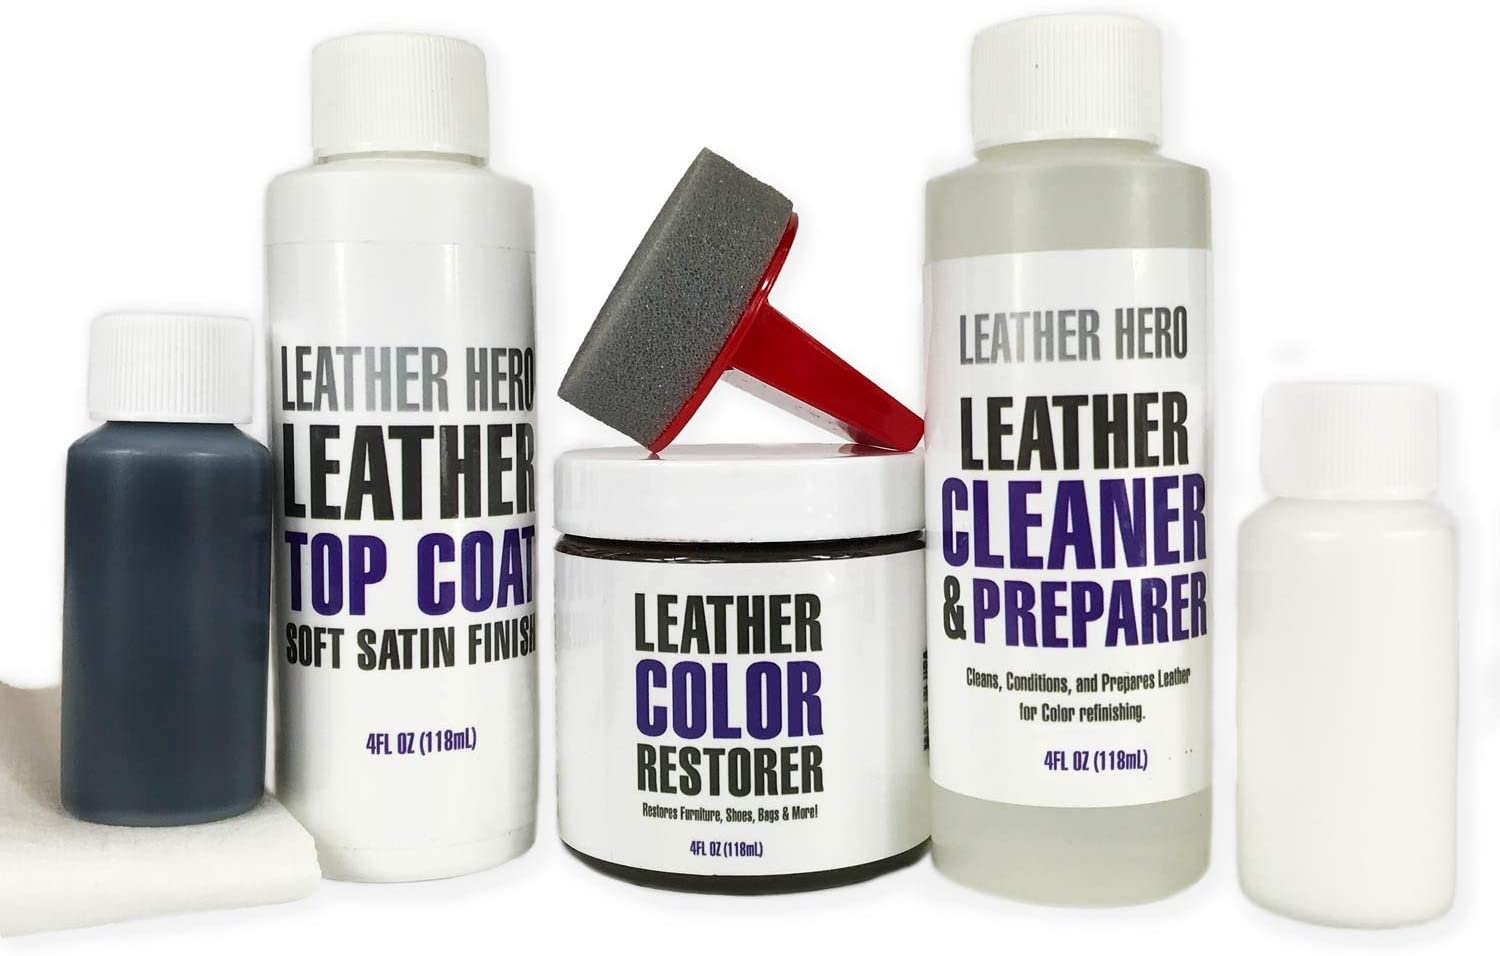 Leather Hero Leather Color Restorer Complete Repair Kit- Refinish, Recolor, Renew Leather & Vinyl Sofa, Purse, Shoes, Auto Car Seats, Couch 4oz (Mahogany)